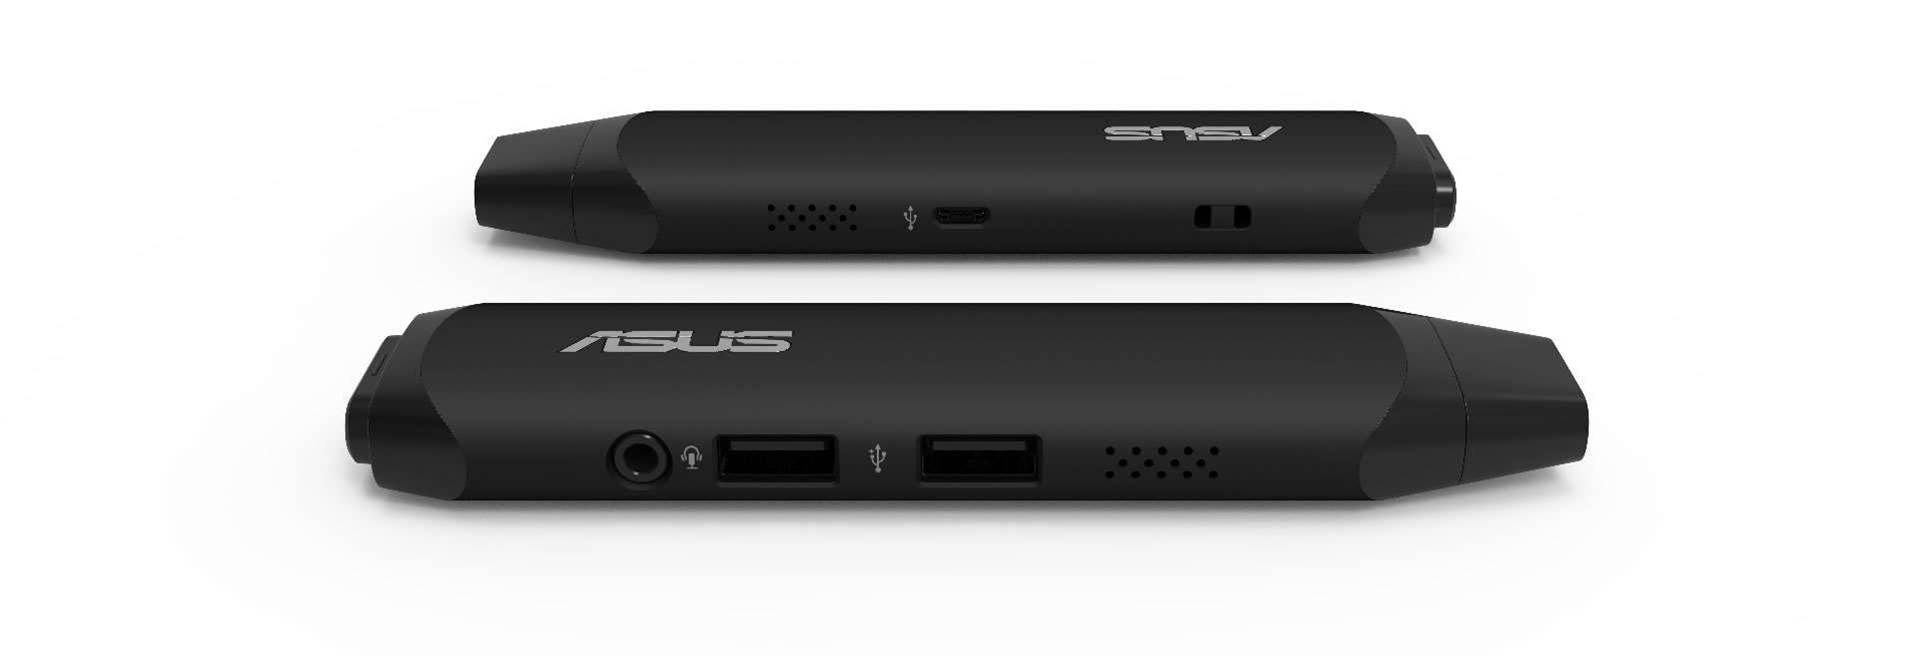 Asus announces VivoStick TS10-B015D, a HDMI-connected pocket-PC